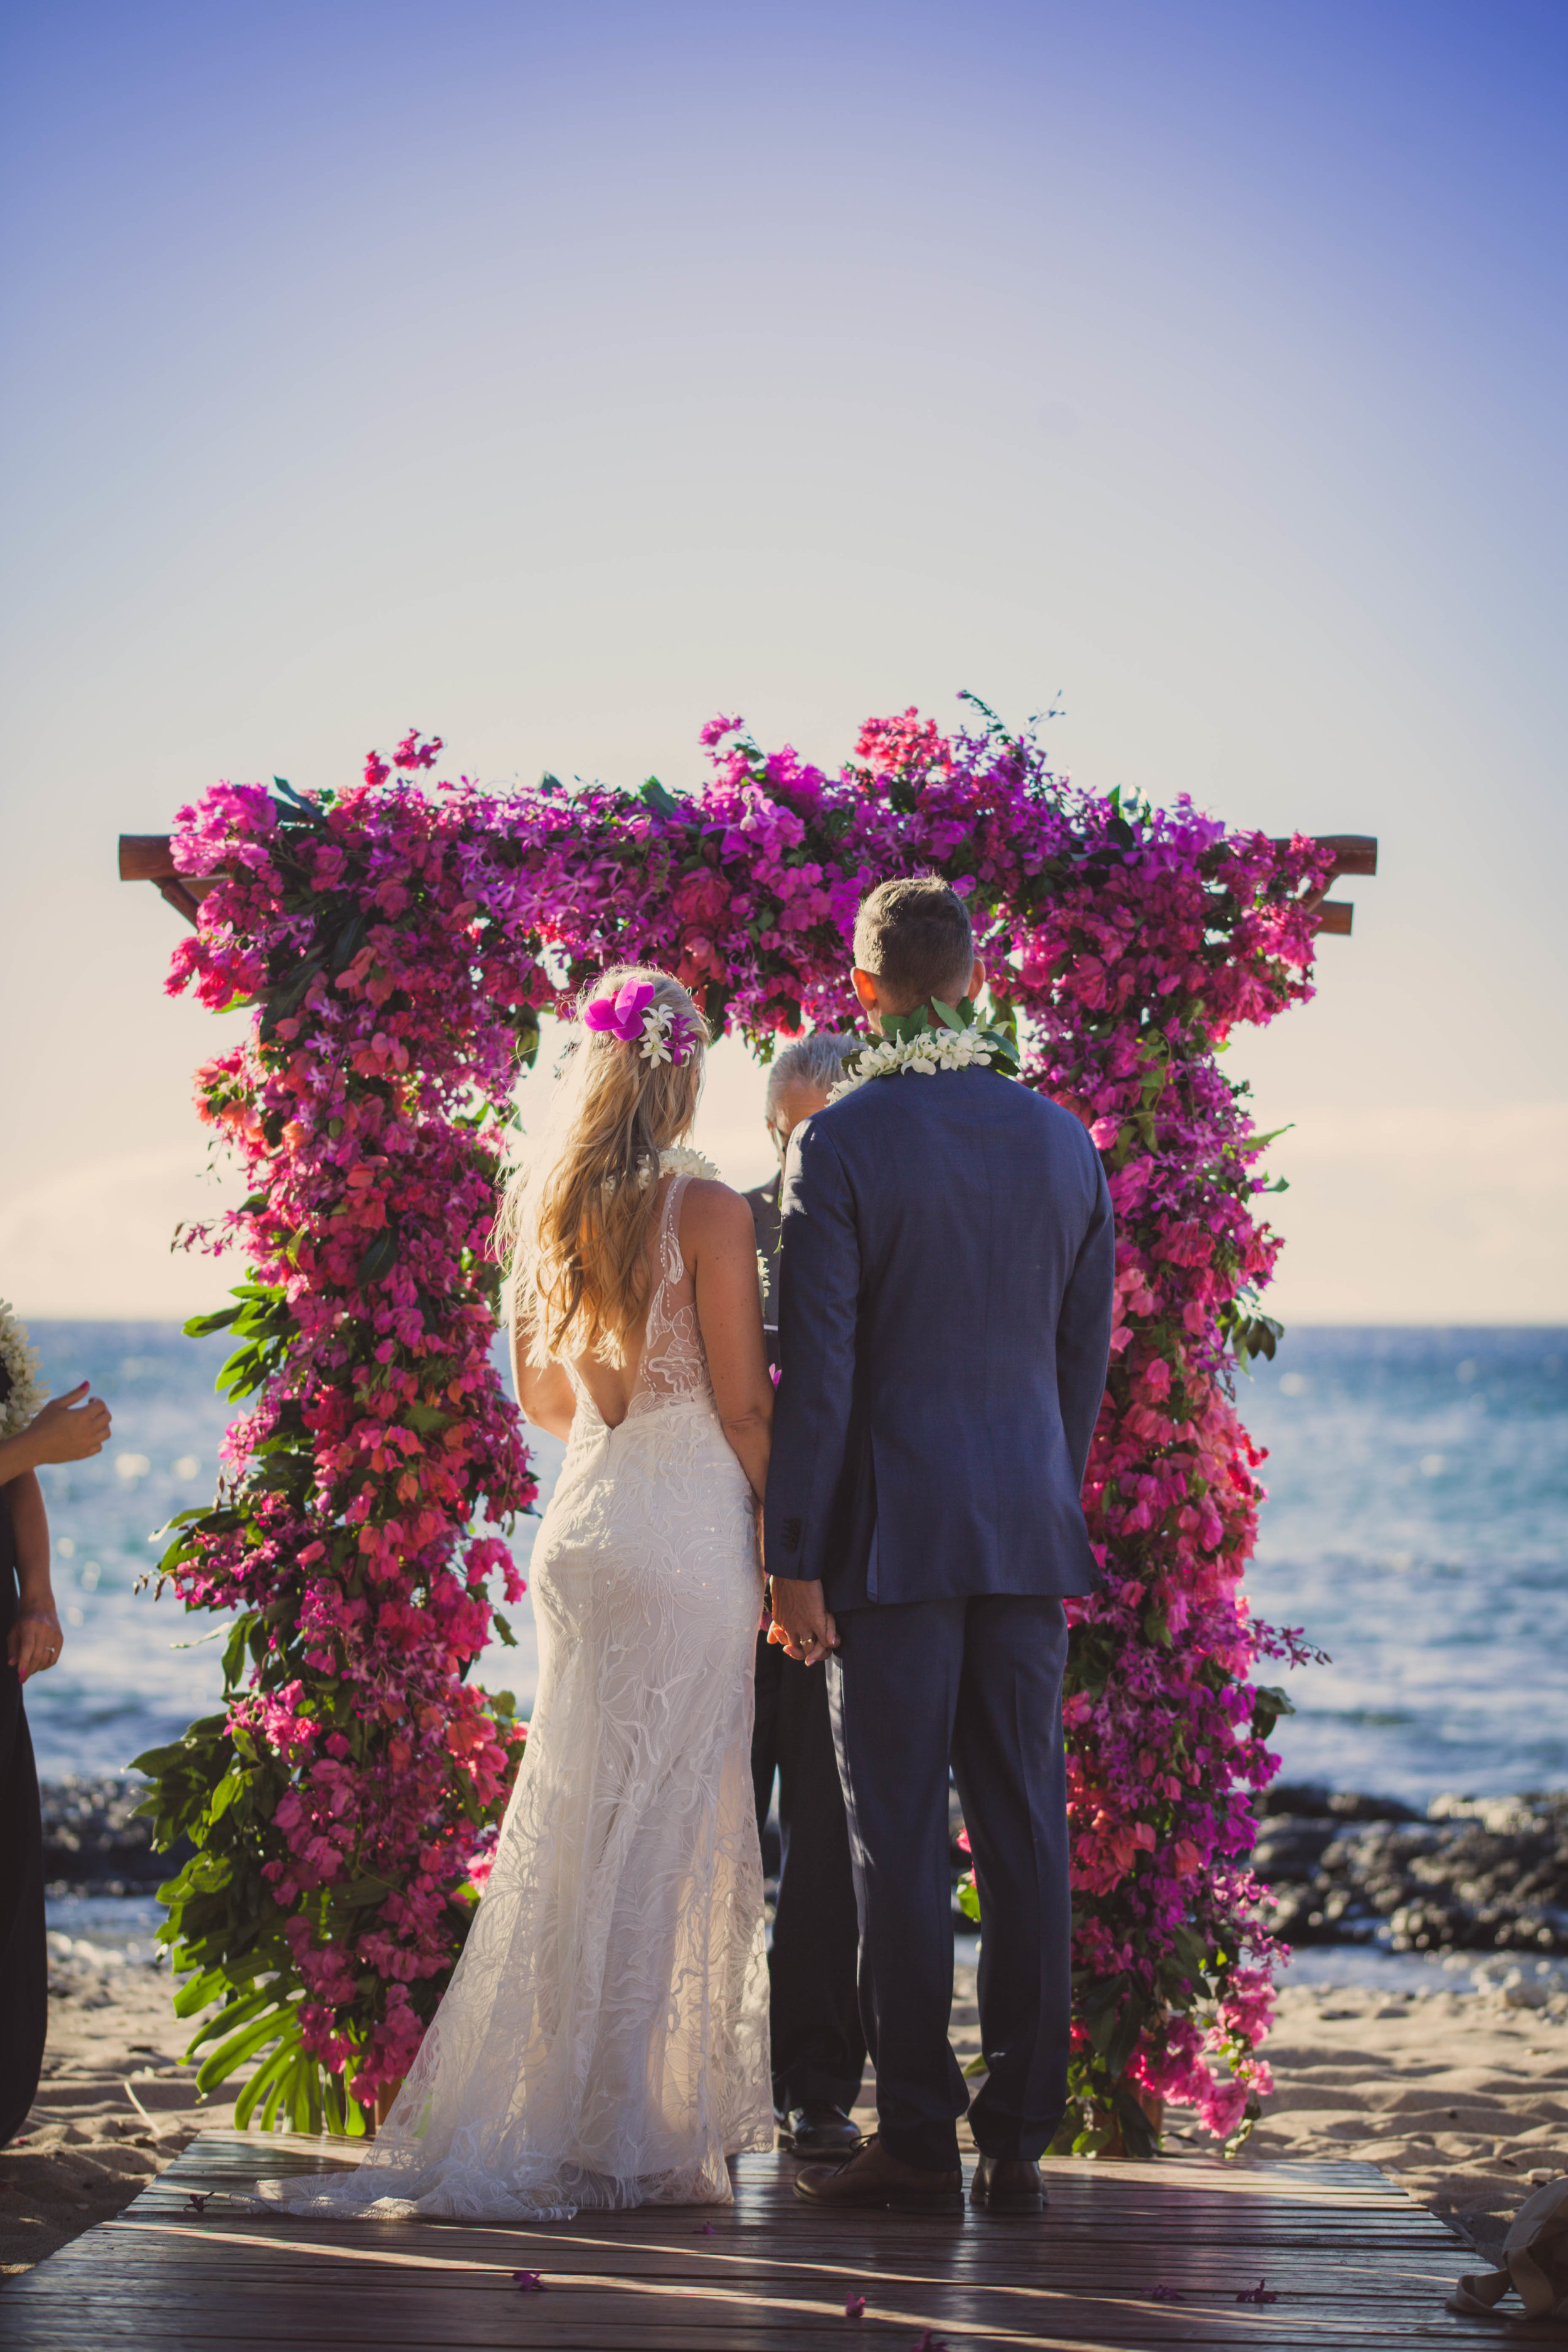 big island hawaii fairmont orchid beach wedding © kelilina photography 20170812174928-1.jpg